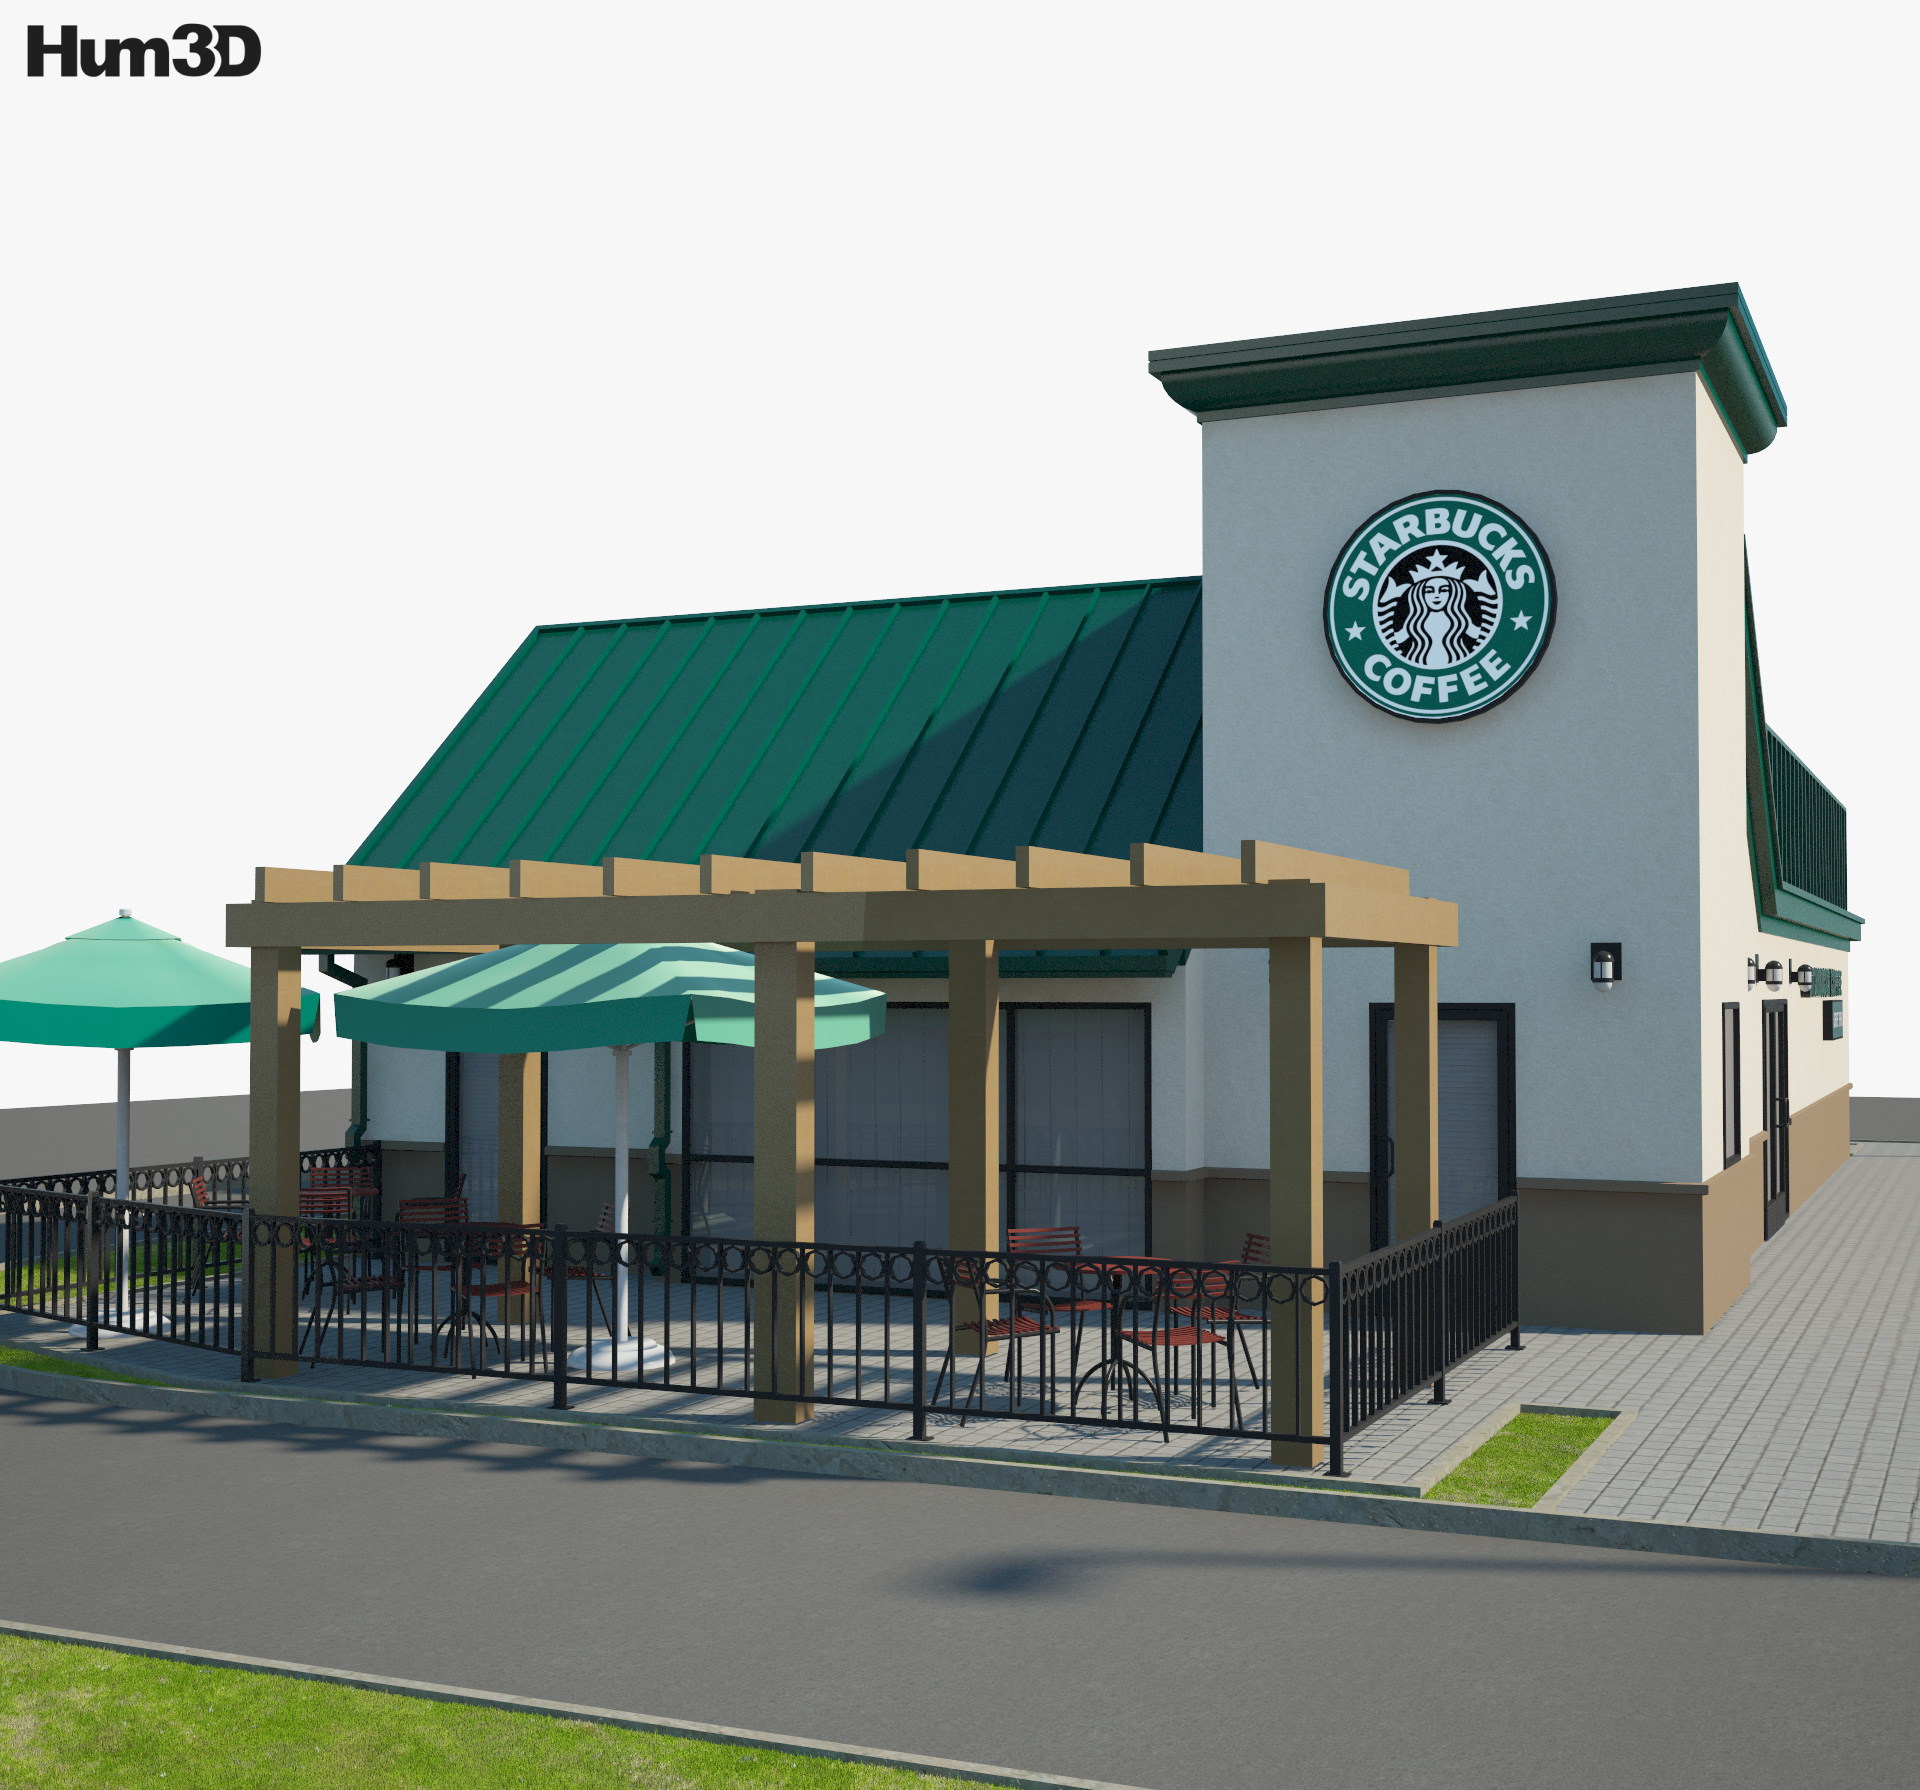 Starbucks Restaurant 03 3d model